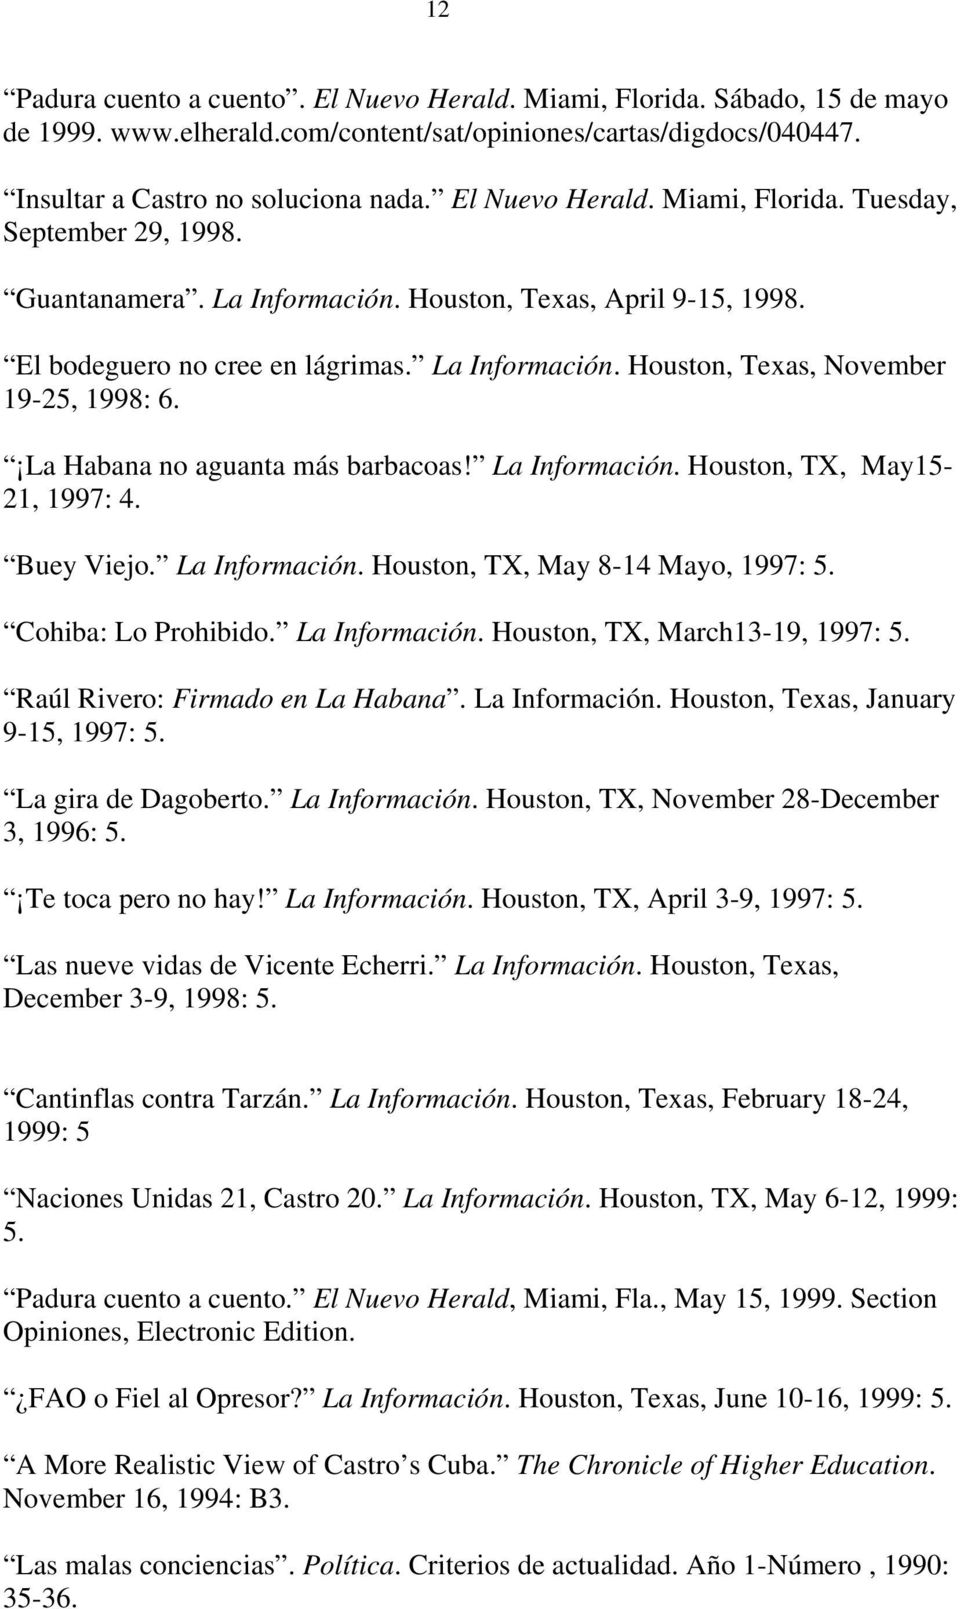 La Habana no aguanta más barbacoas! La Información. Houston, TX, May15-21, 1997: 4. Buey Viejo. La Información. Houston, TX, May 8-14 Mayo, 1997: 5. Cohiba: Lo Prohibido. La Información. Houston, TX, March13-19, 1997: 5.